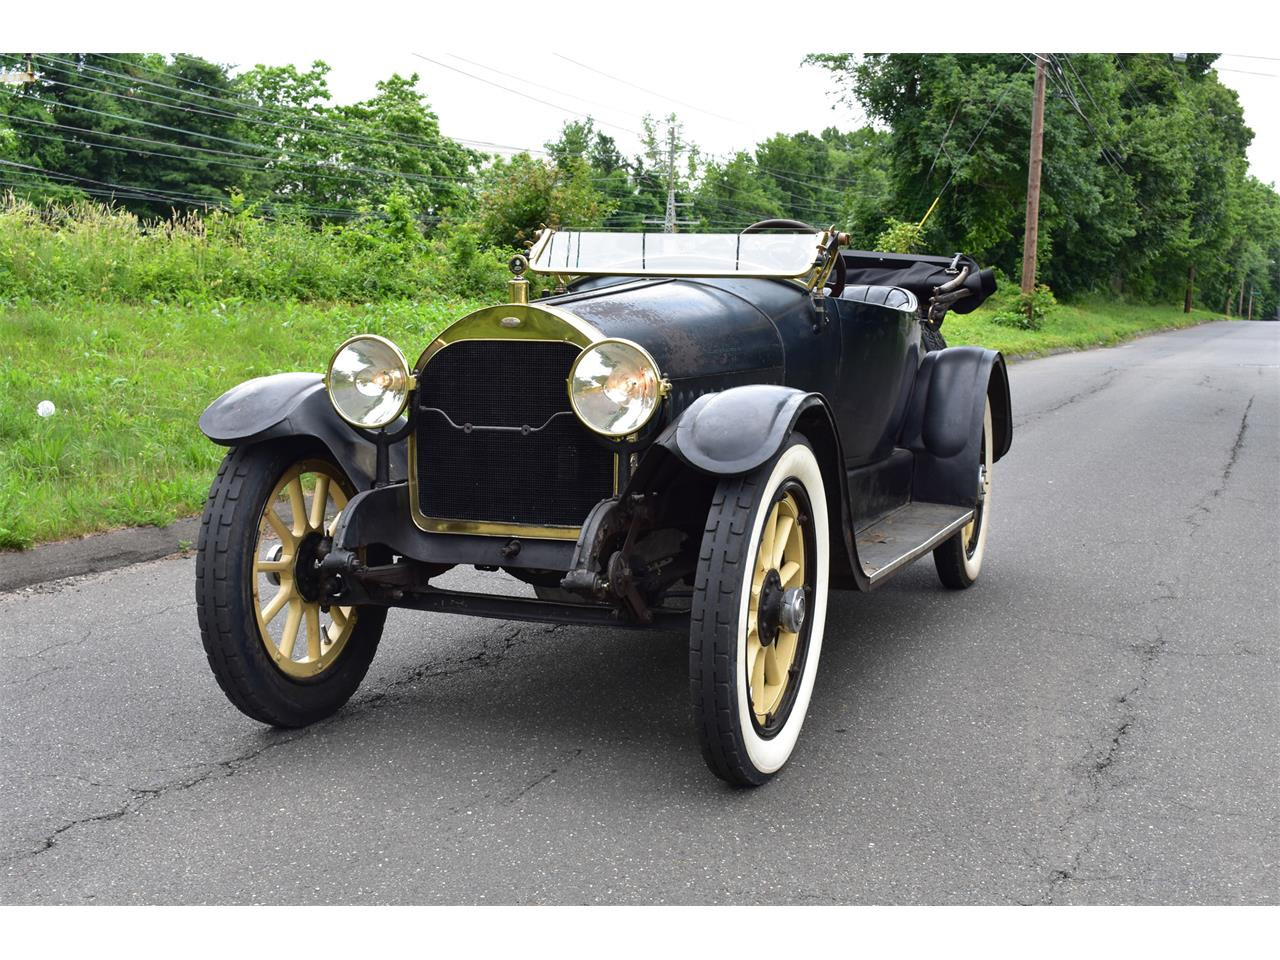 Large Picture of 1915 Marmon 41 located in Orange Connecticut Auction Vehicle Offered by Dragone Classic Motorcars - QH6O